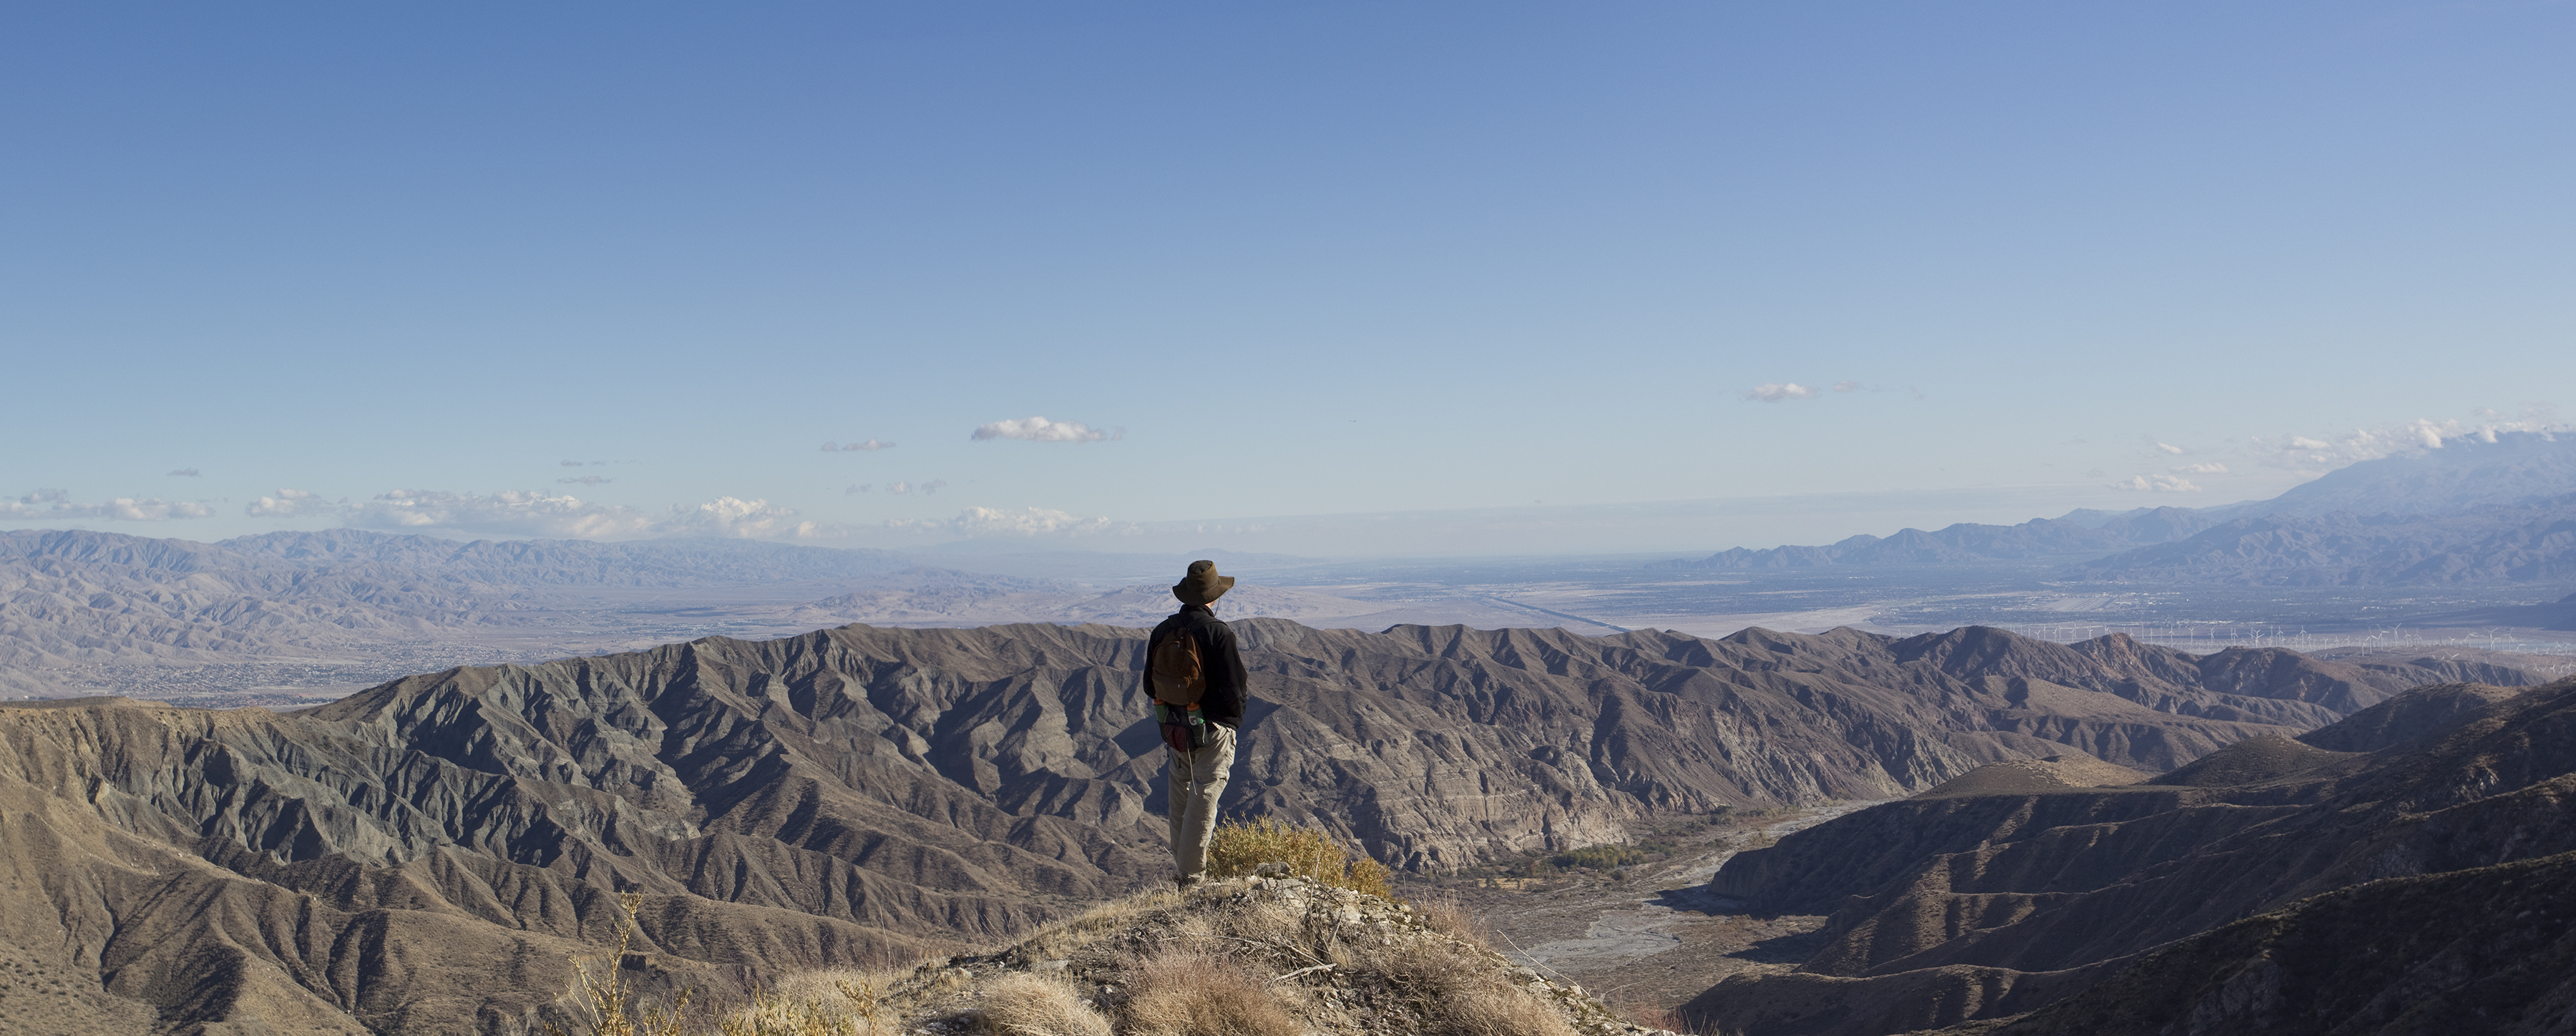 Greater Palm Springs Welcomes New National Monument: Sand to